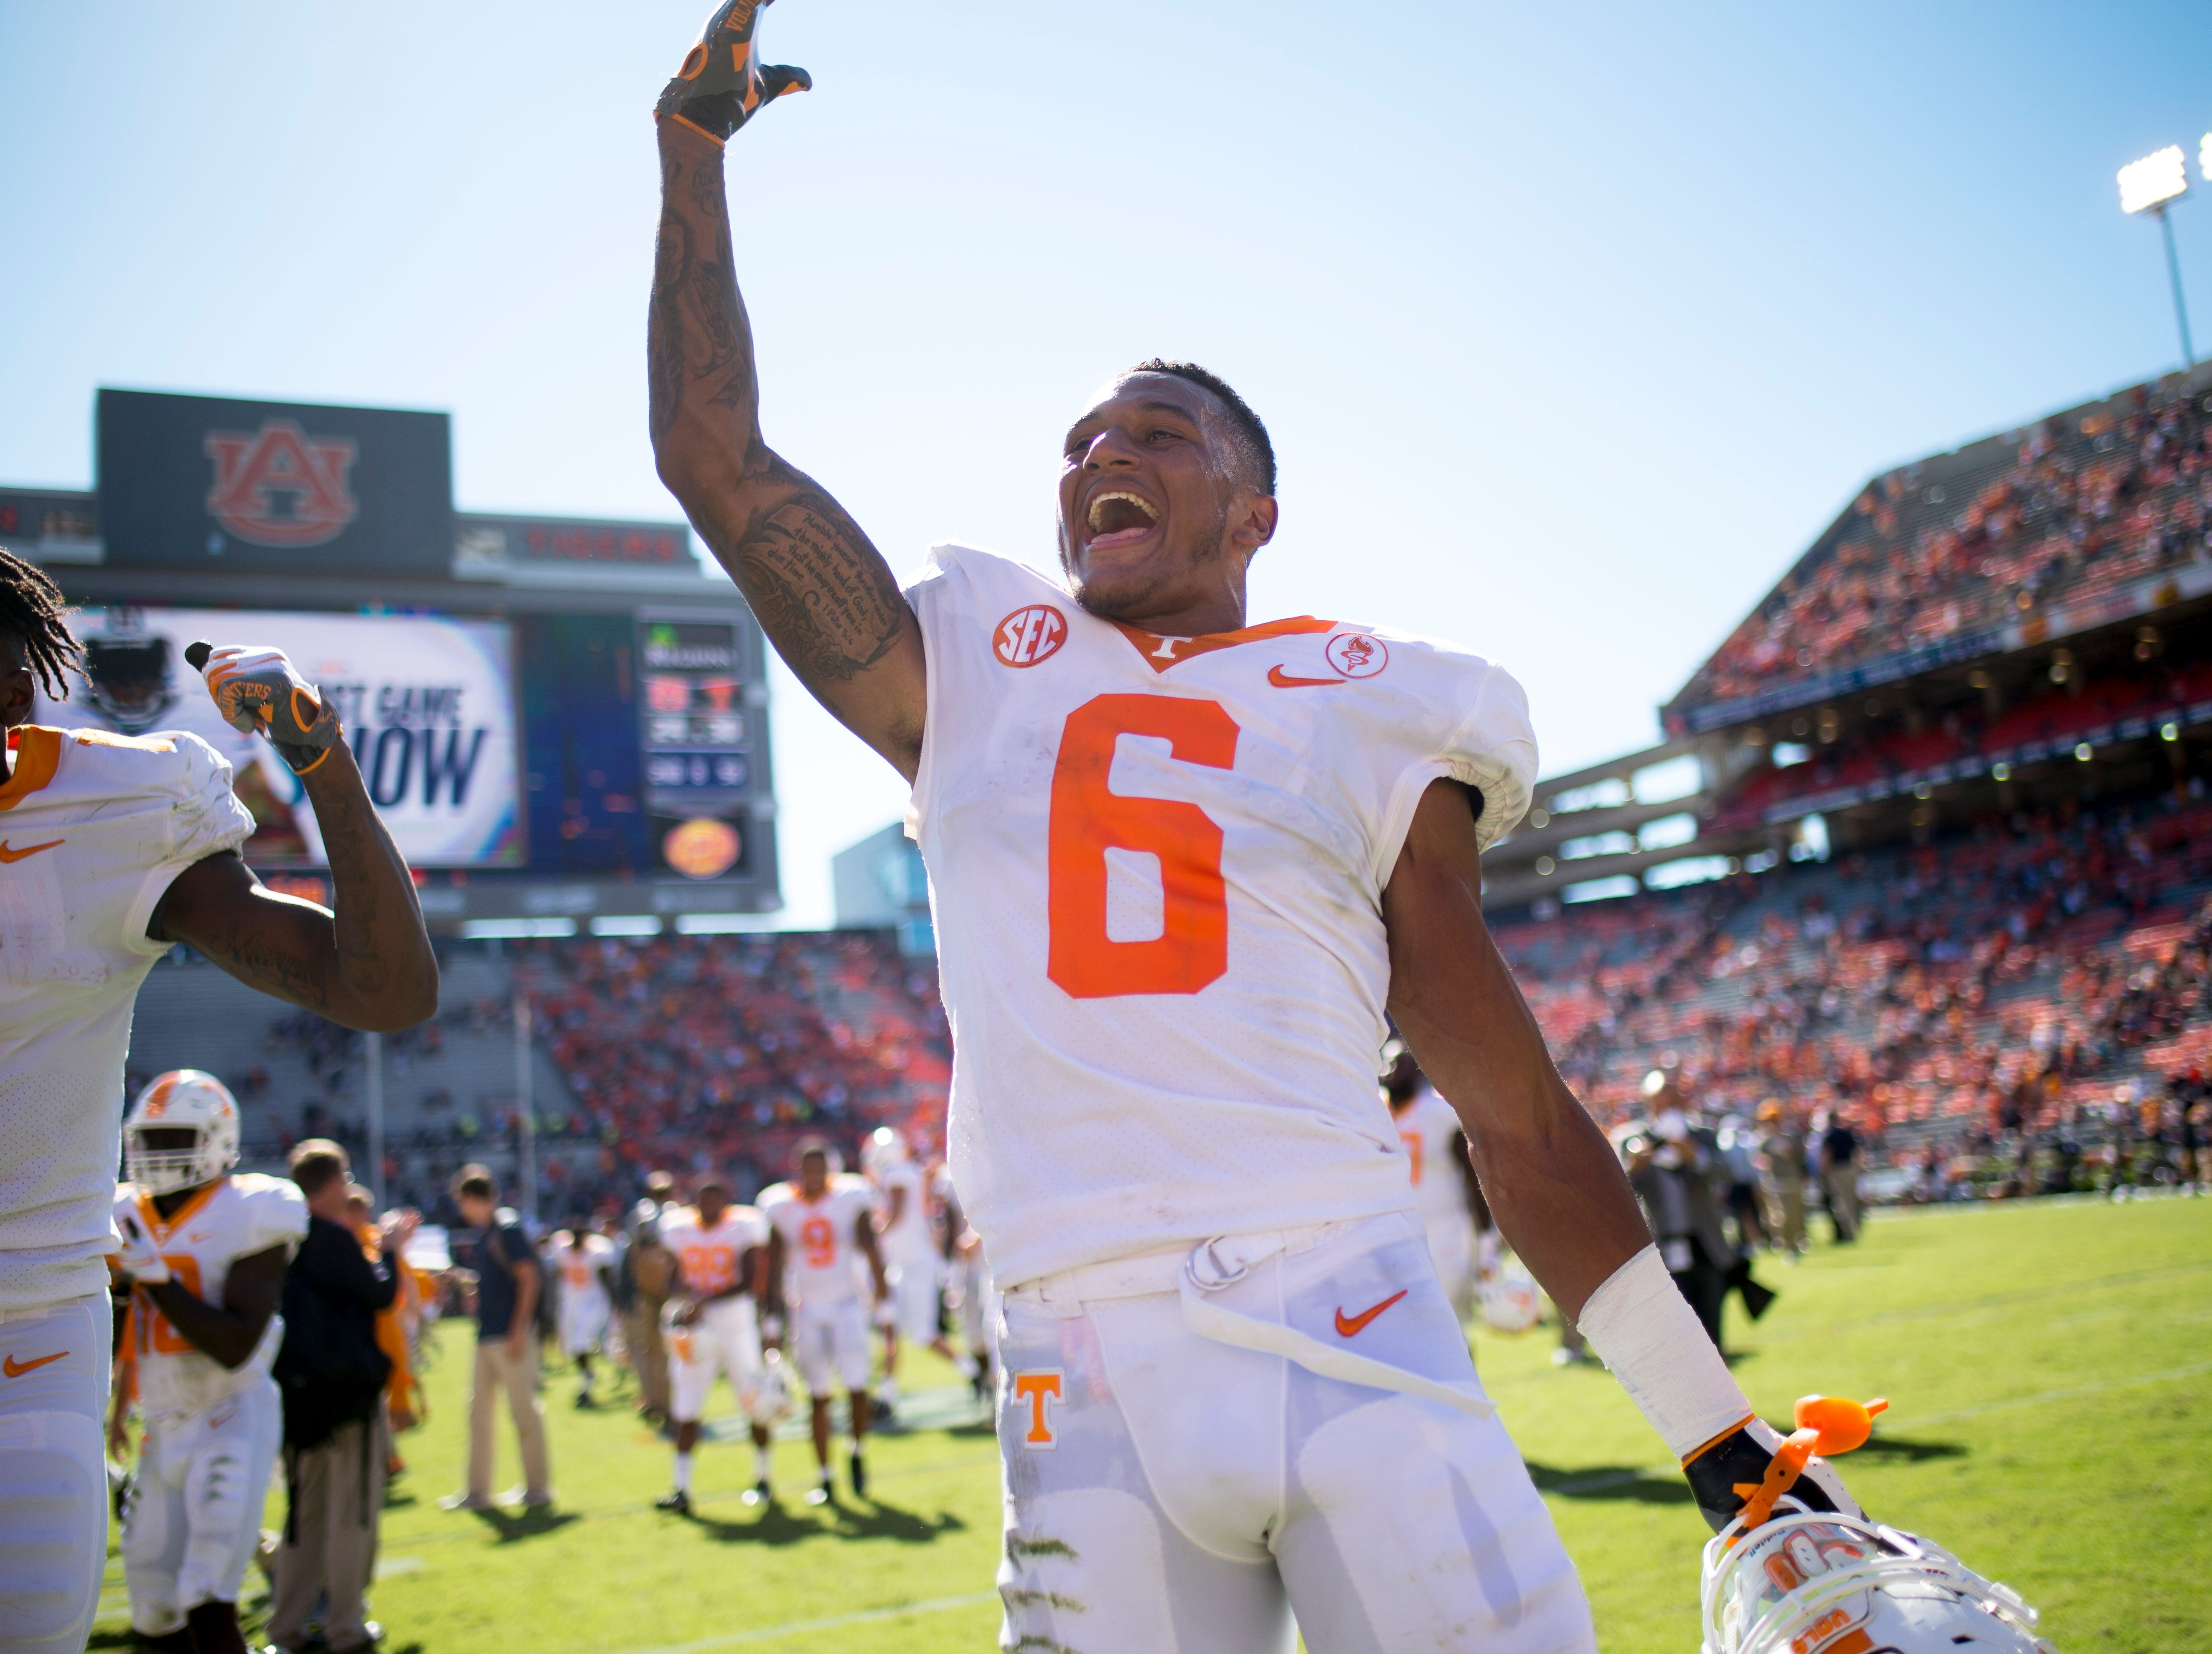 Tennessee defensive back/wide receiver Alontae Taylor (6) celebrates their 30-24 win over Auburn at Jordan-Hare Stadium in Auburn, Alabama on Saturday, October 13, 2018.